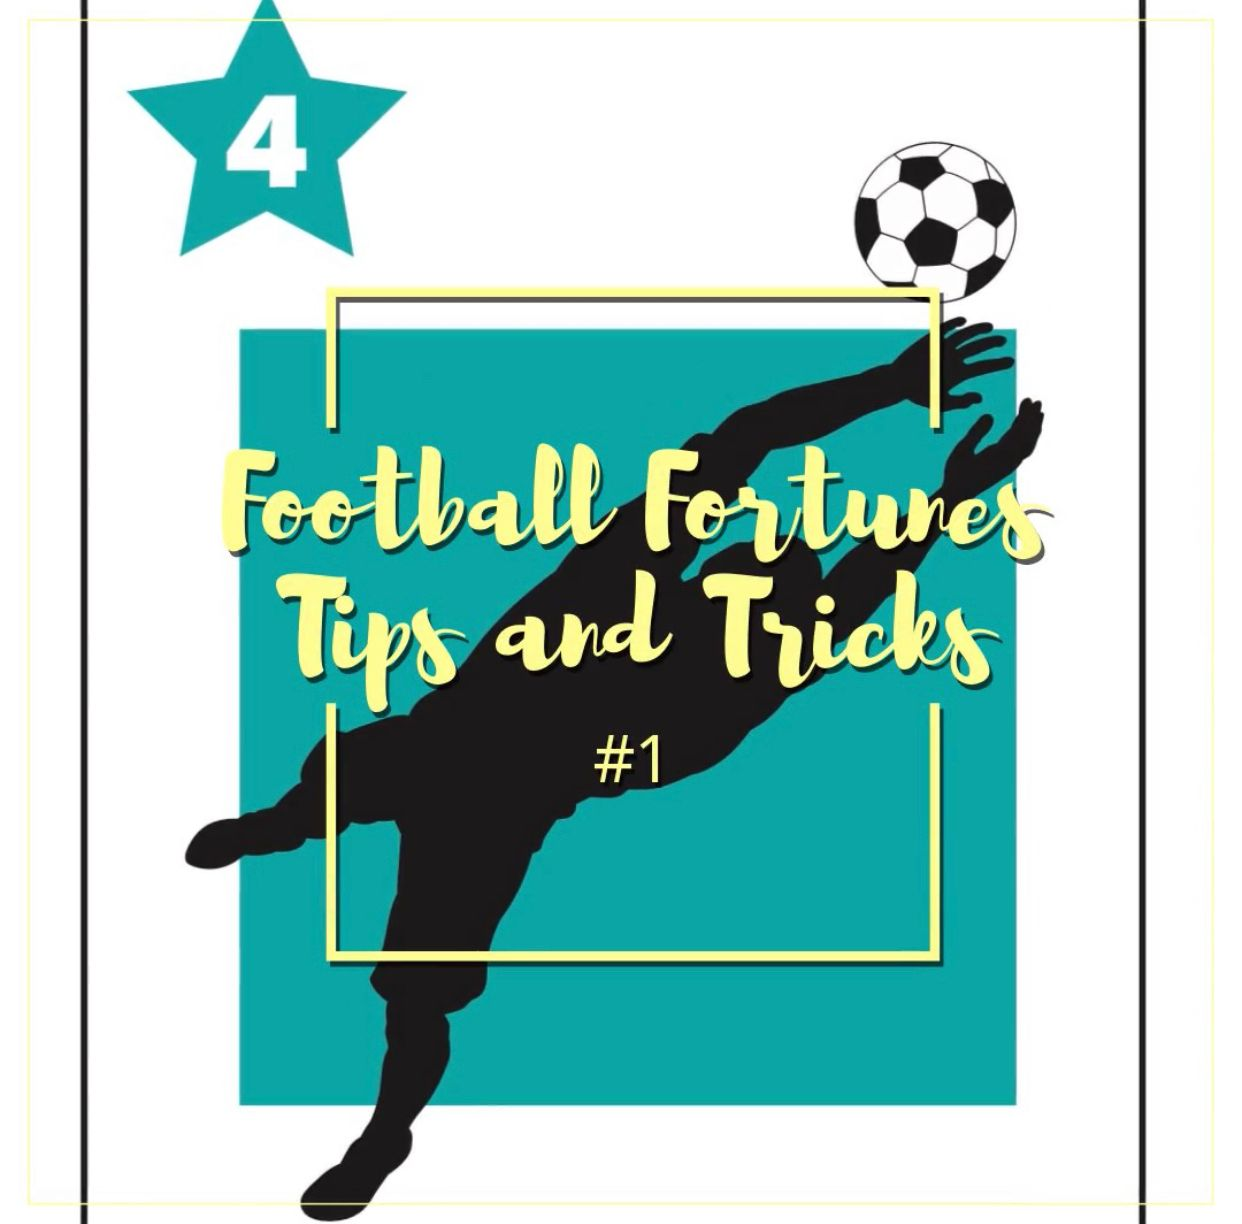 Football Fortunes Tips and Tricks #1 - Goalkeepers